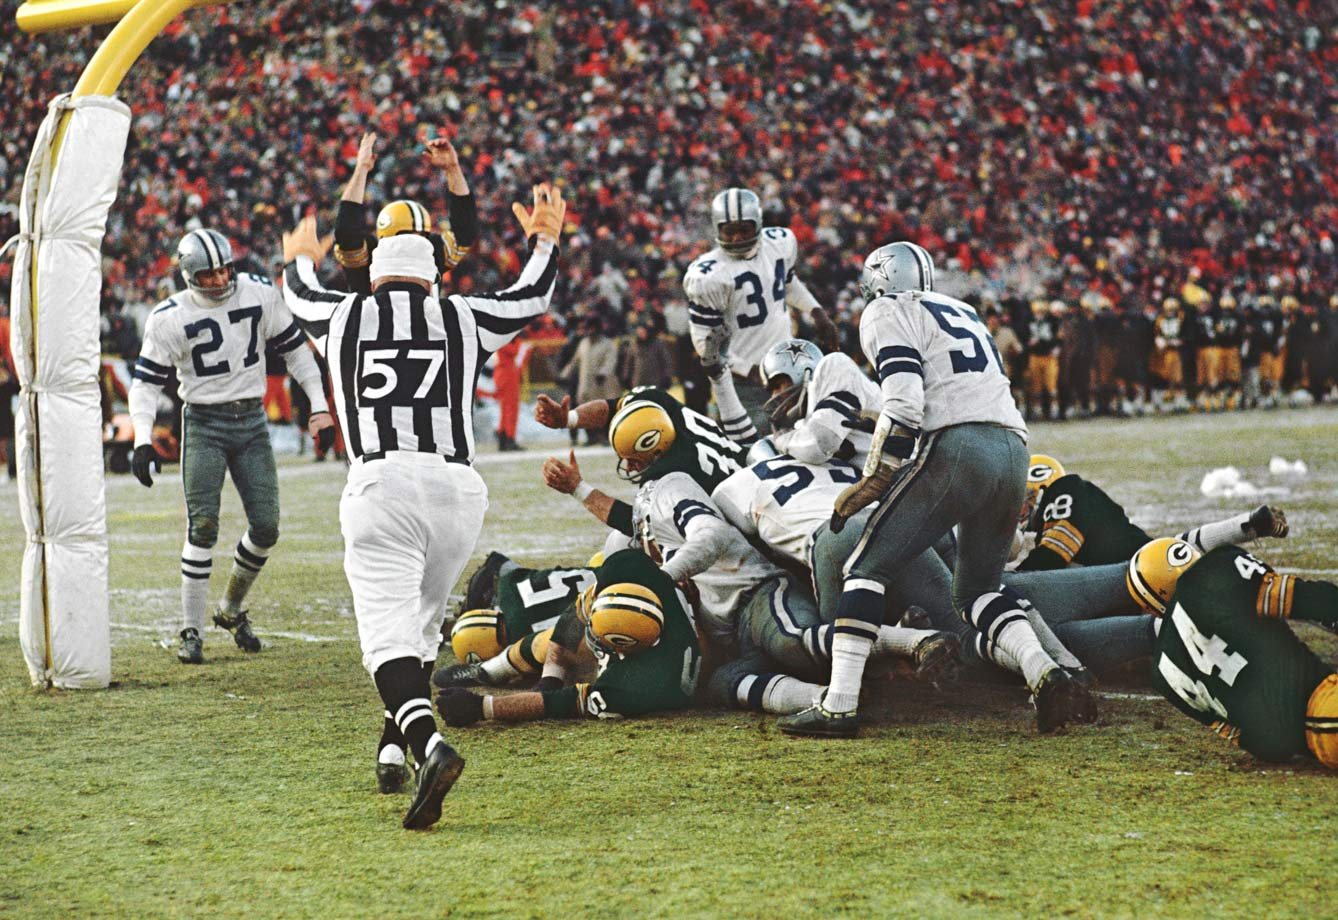 A stone-cold classic, the Ice Bowl is remembered as one of the best games in NFL history. The rematch of the 1966 NFL Title Game pitted two of the game's best coaches, Vince Lombardi and Tom Landry, against each other and lived up to the substantial hype surrounding it, with Packers quarterback Bart Starr scoring a last second touchdown in -20 degree weather to give Green Bay a 21-17 win.